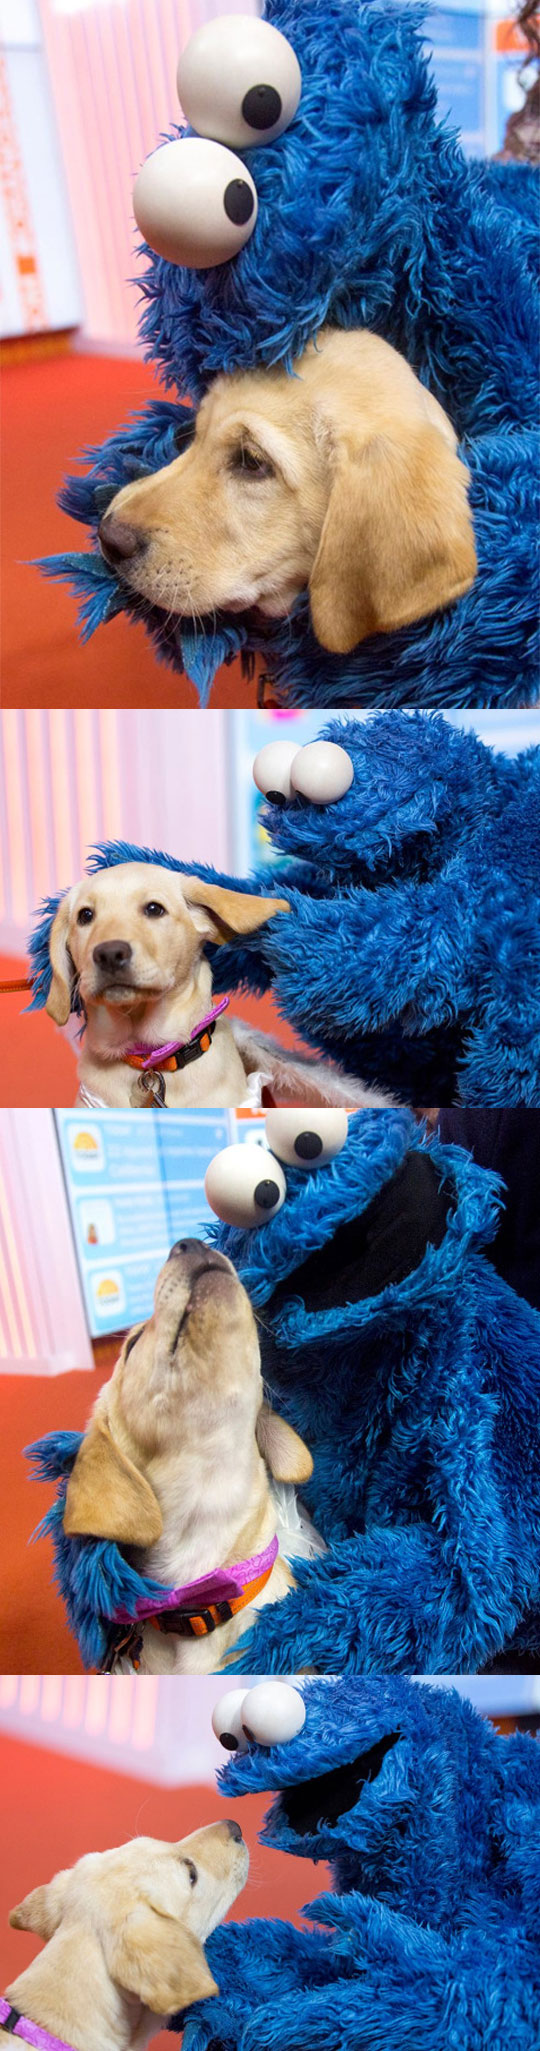 funny-dog-cookie-monster-cute